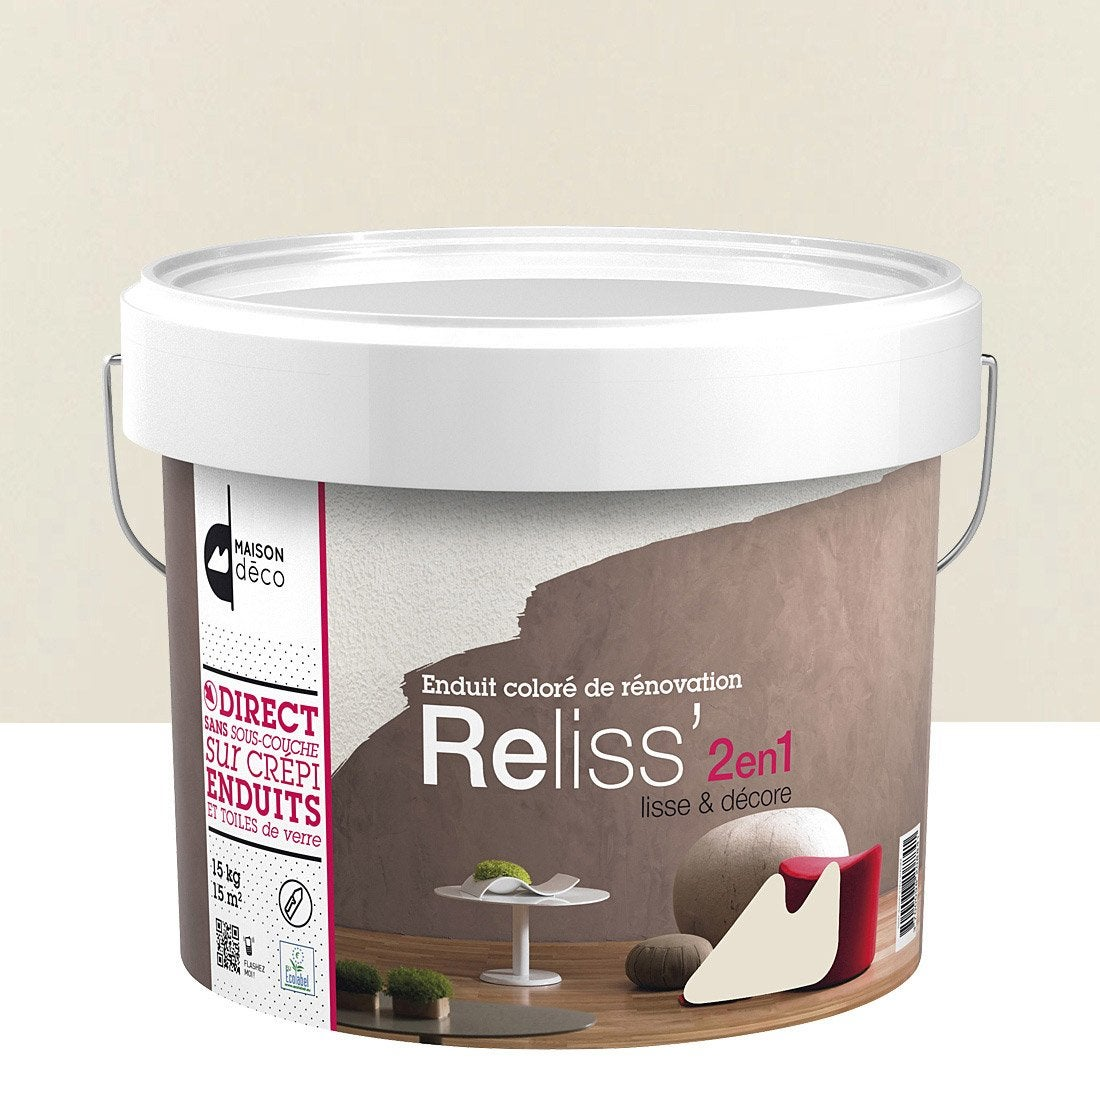 Enduit d coratif reliss 2 en 1 maison deco laine 15 kg for Enduit decoratif interieur